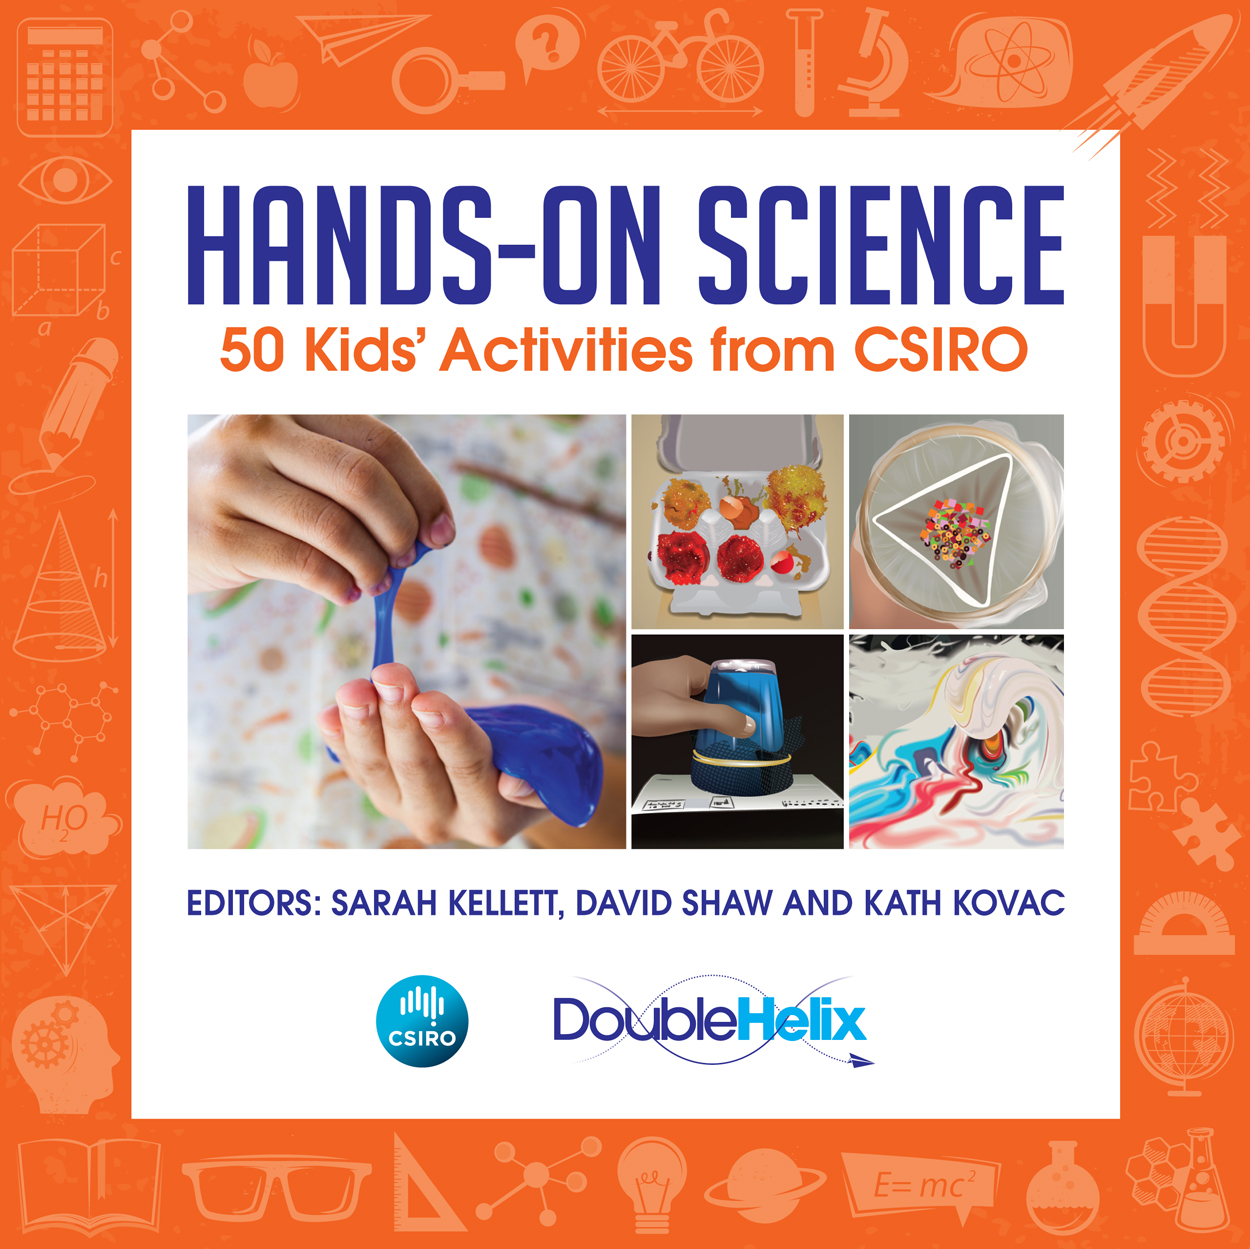 Cover featuring five images of science activities on a white background, w